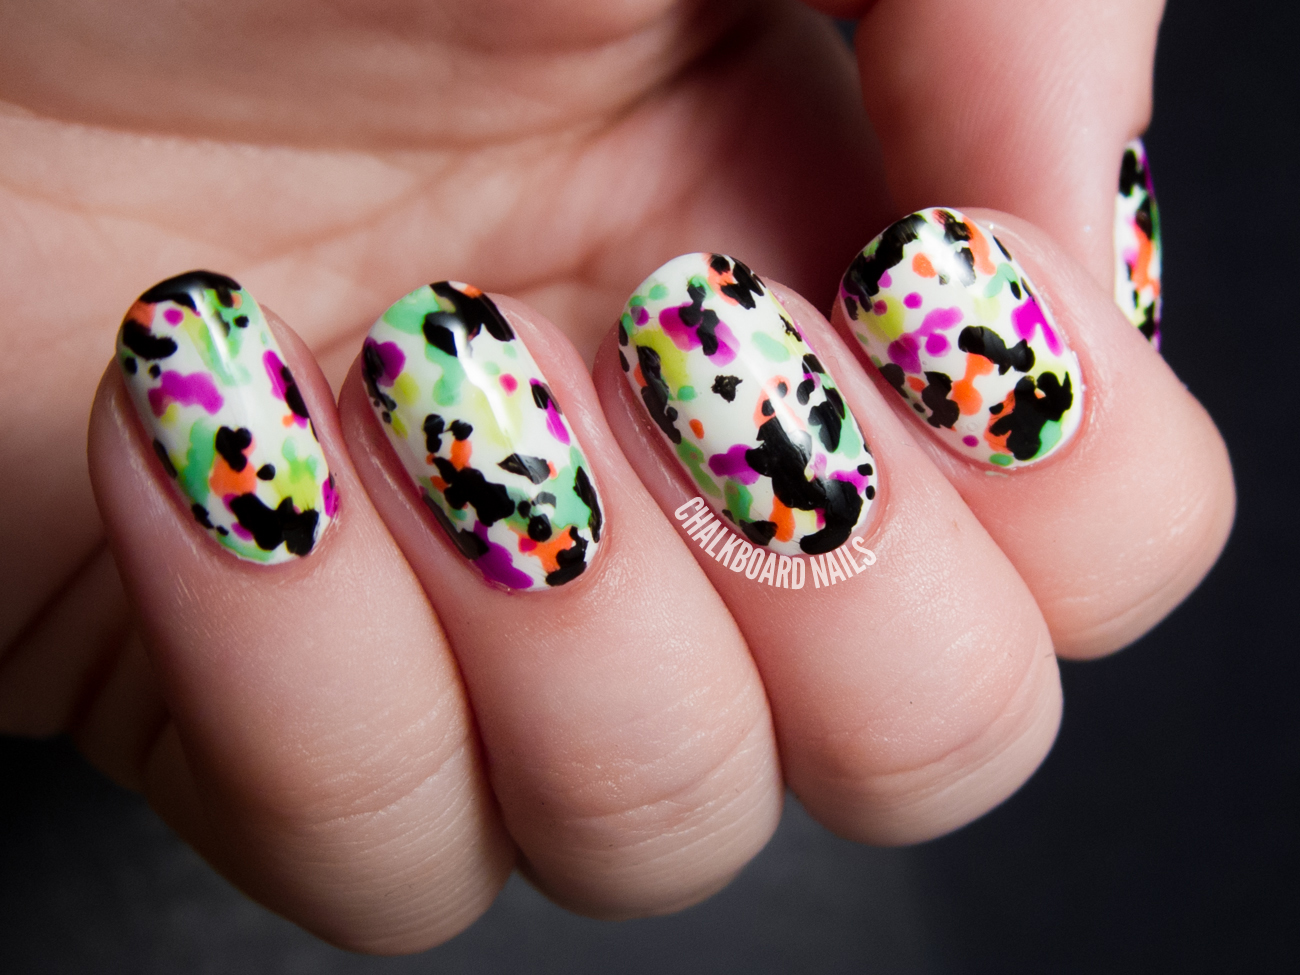 Abstract Splattered Floral Opi Neons Nail Art Chalkboard Nails